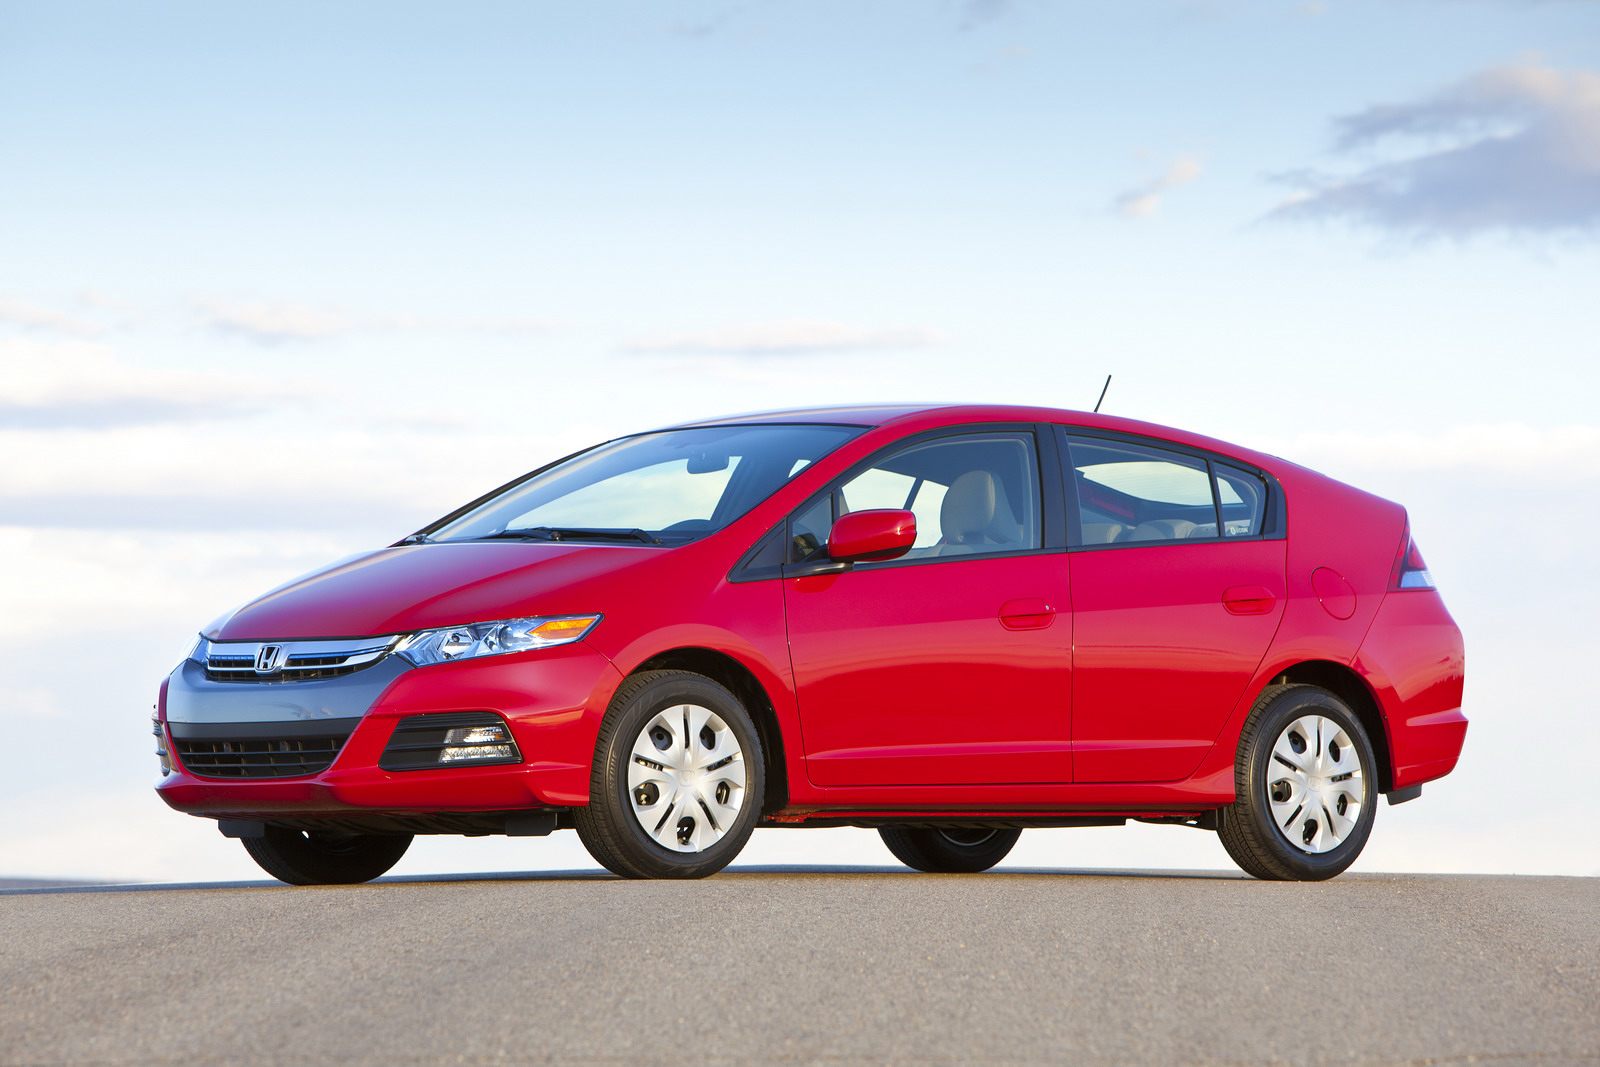 2012 Honda Insight Hybrid Introduced in the US - Photo ...